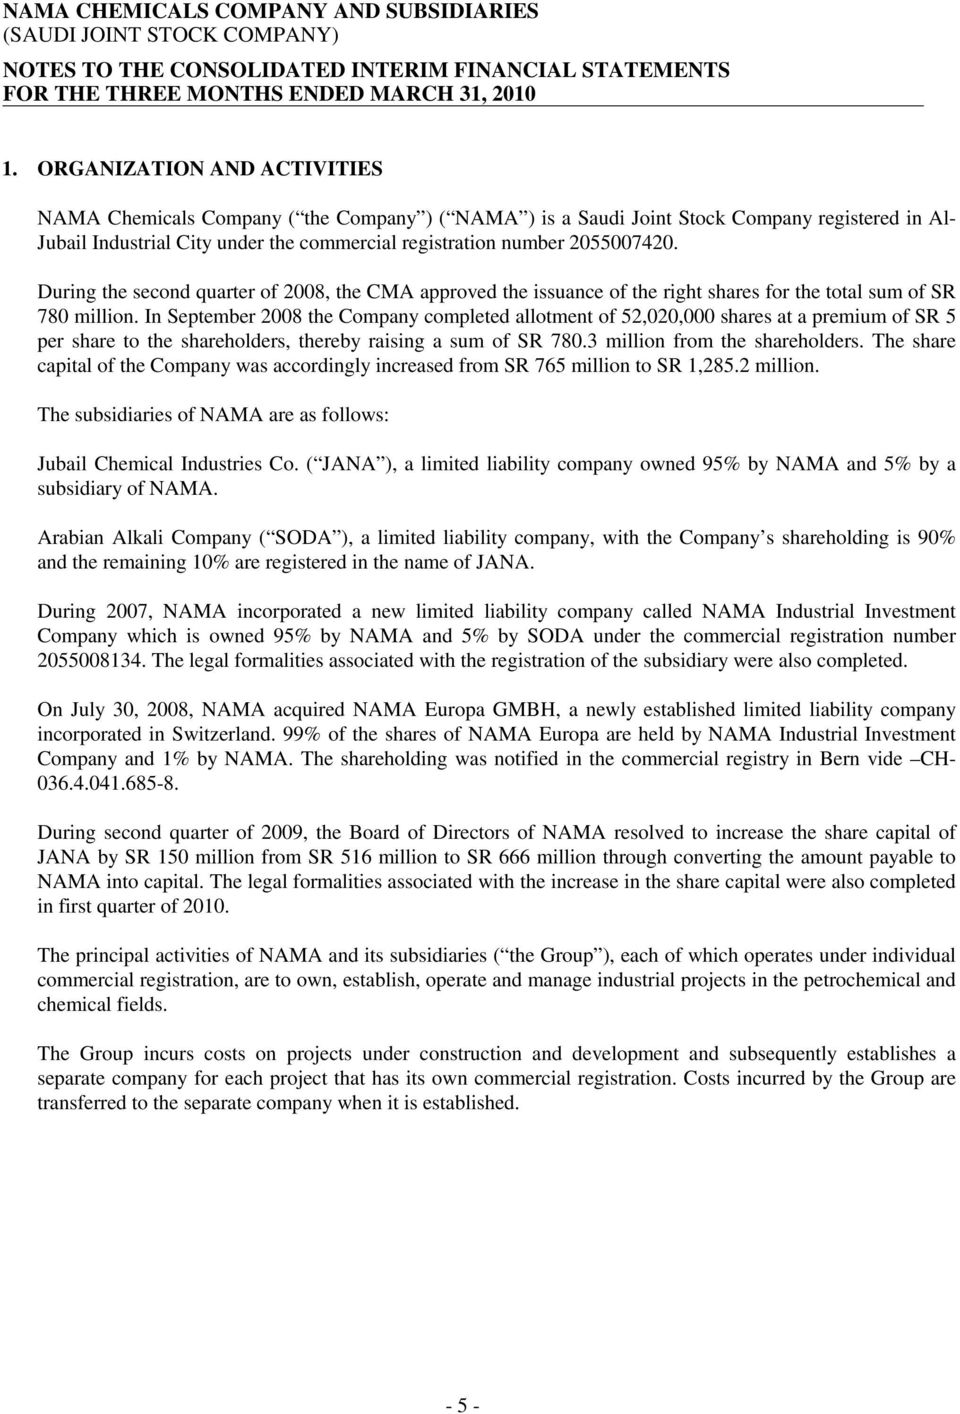 NAMA CHEMICALS COMPANY AND SUBSIDIARIES (SAUDI JOINT STOCK